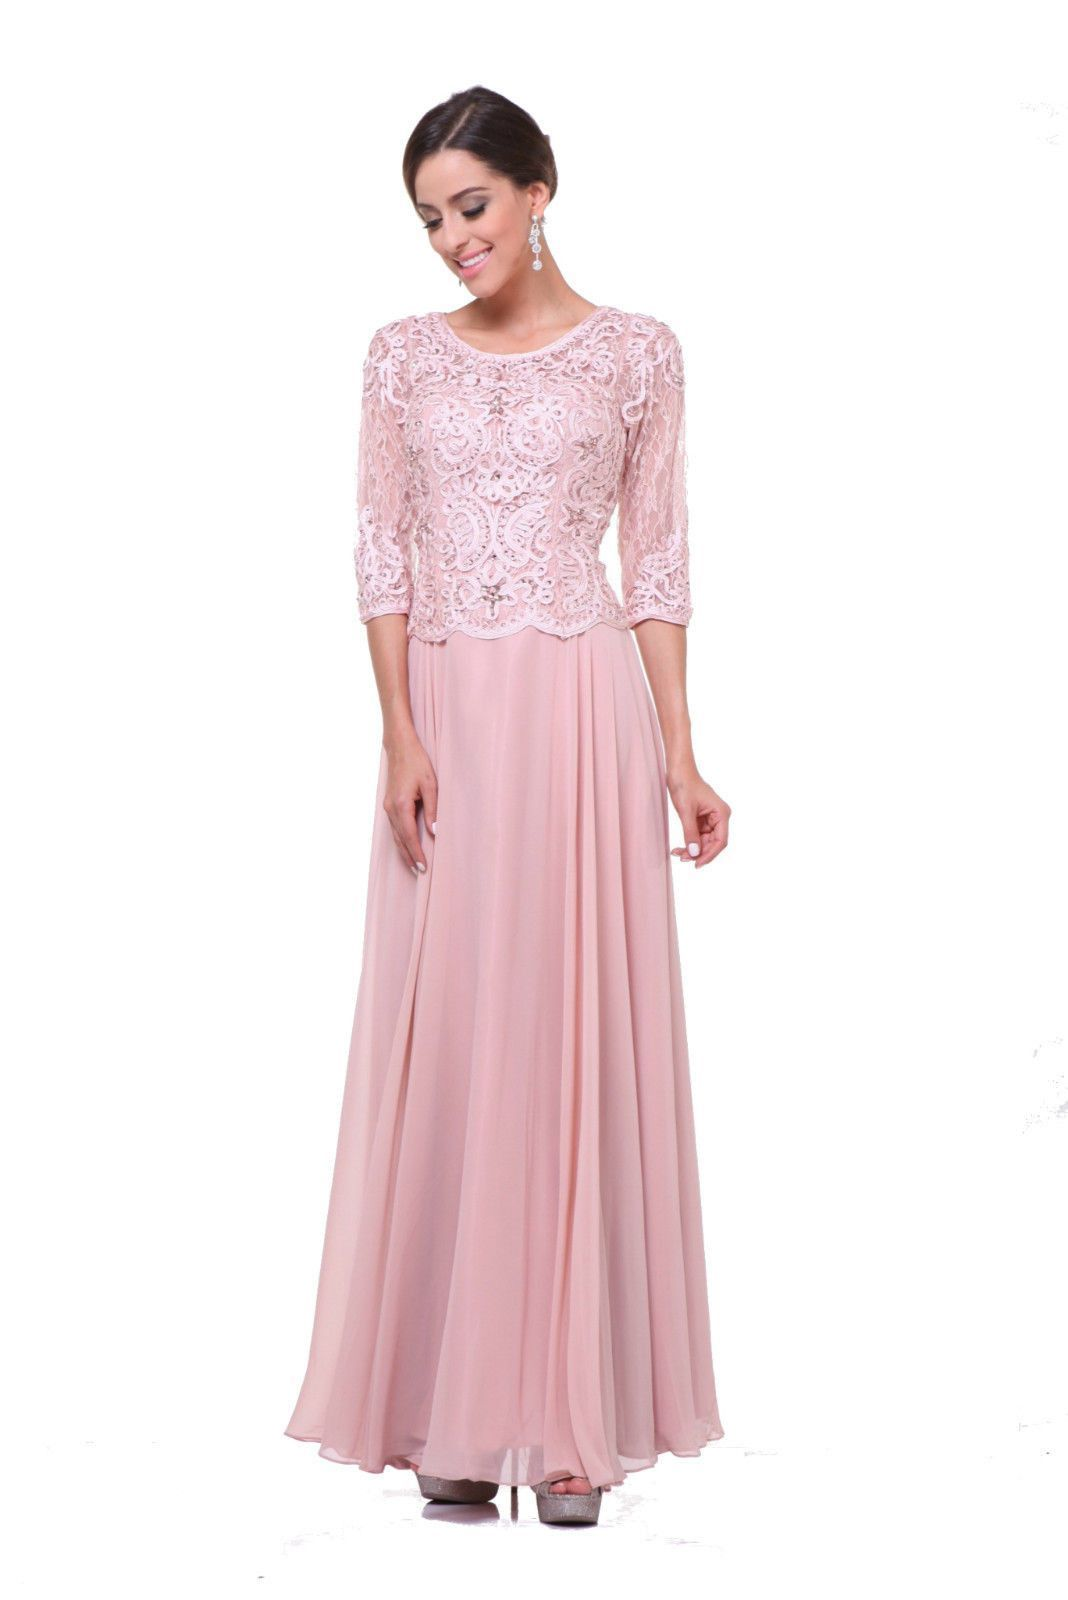 71fb115d07369 Modest Mother of the Bride Dress Plus Size Hijab Long Sleeves - The Dress  Outlet - 4